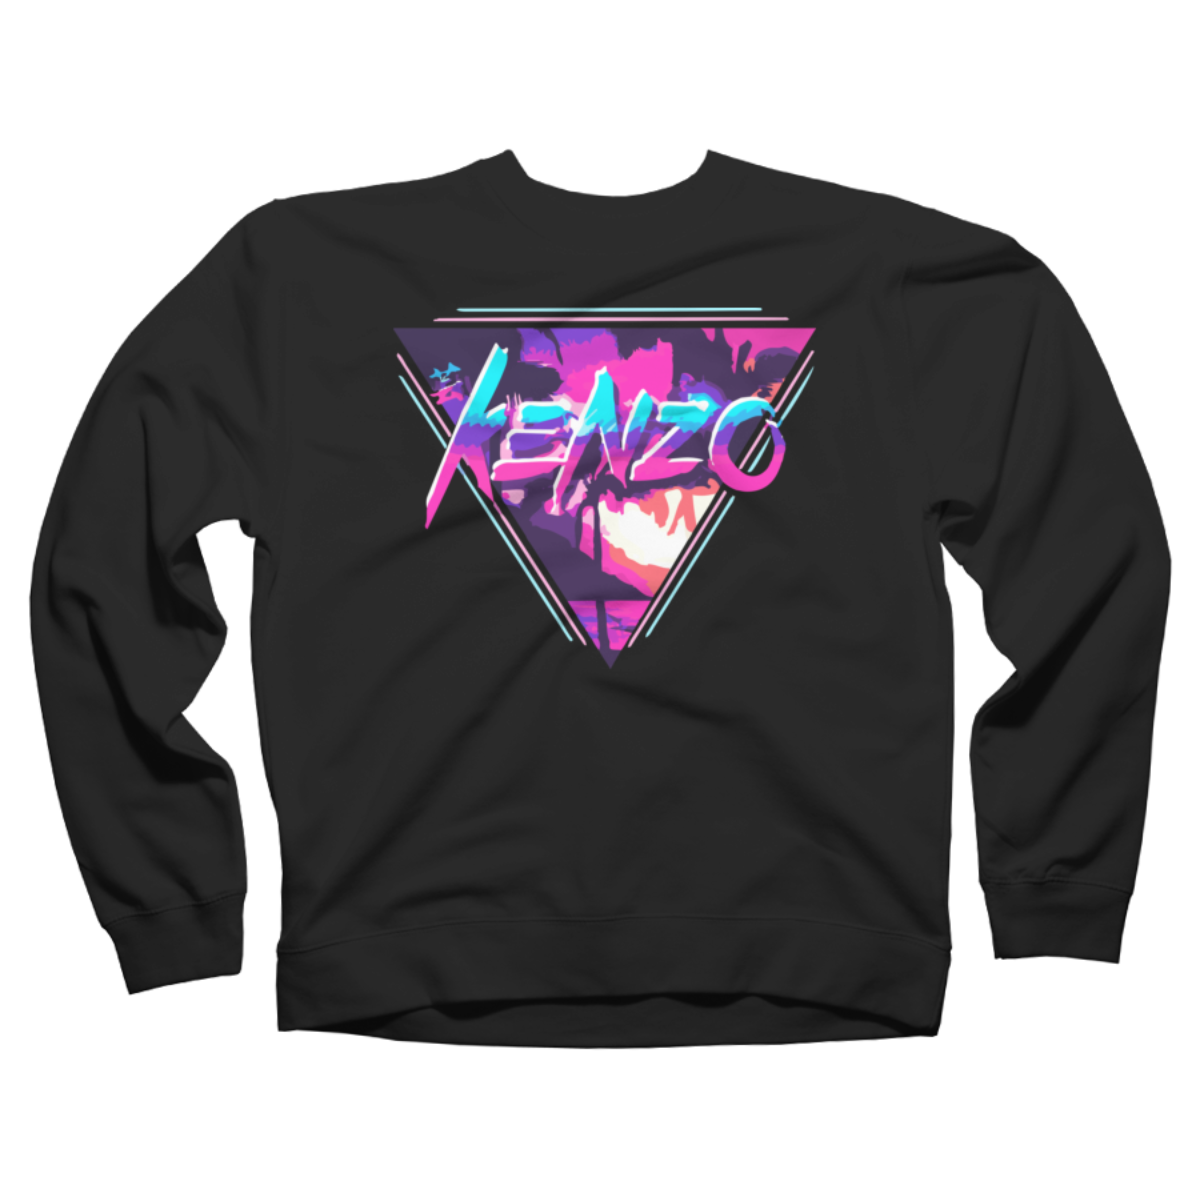 Kenzo Art logo tshirt Crew Neck Sweatshirt Kenzo Art logo tshirt is a cozy ring spun cotton Black %type designed by KenzoArt. This design is featured in sci-fi & fantasy, art styles, neon, retro, space, summer, themes, vintage designs. Shop DesignByHumans.com for the best selection of cool graphic tees, tank tops, sweatshirts, notebooks, phone cases, and art prints.